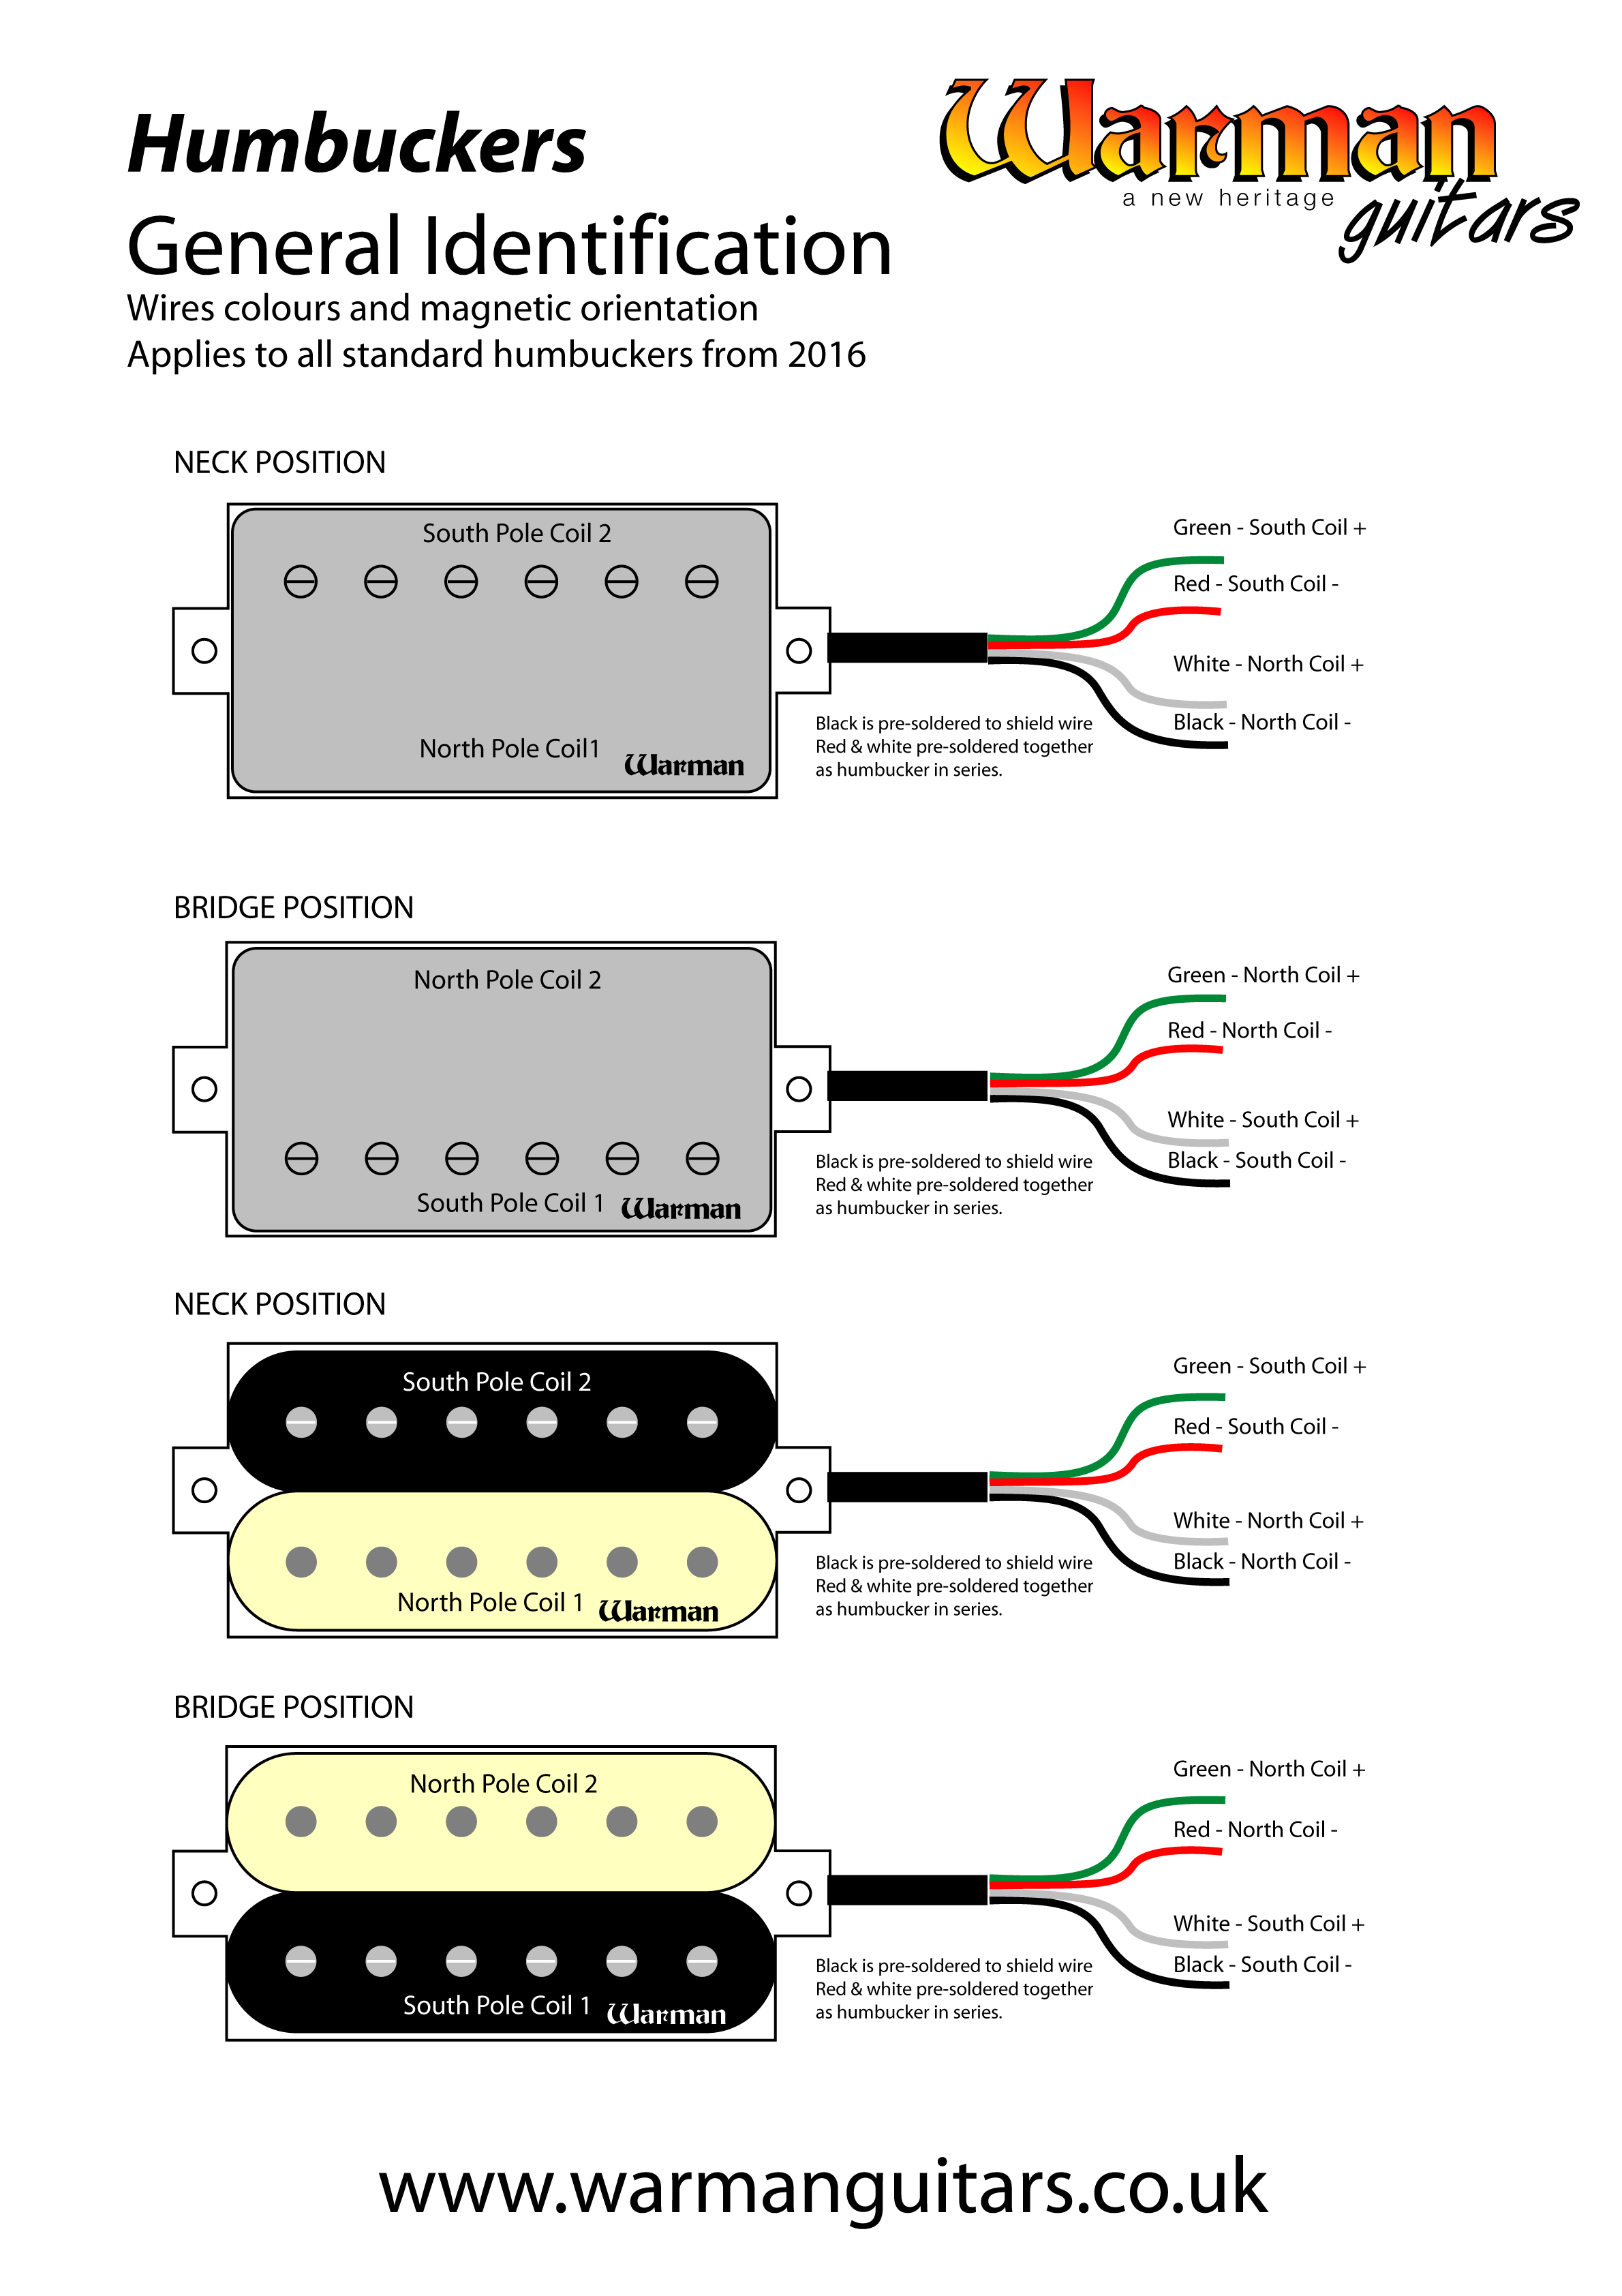 Humbucker-wire-ID Warman Humbucker Wiring Diagram on